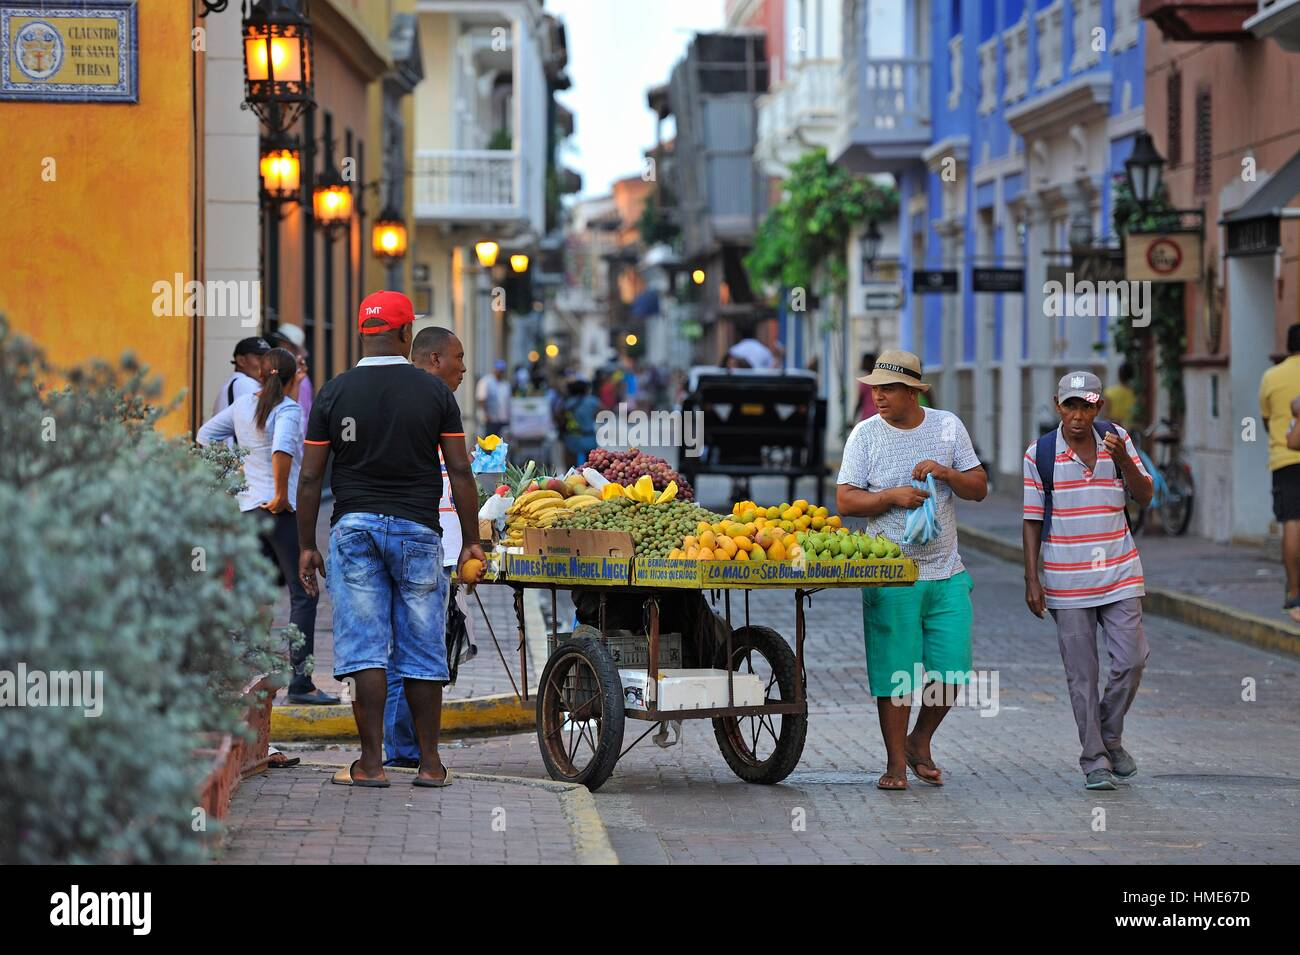 street vendor of fruits inside the downtown colonial walled city, Cartagena, Colombia, South America. - Stock Image